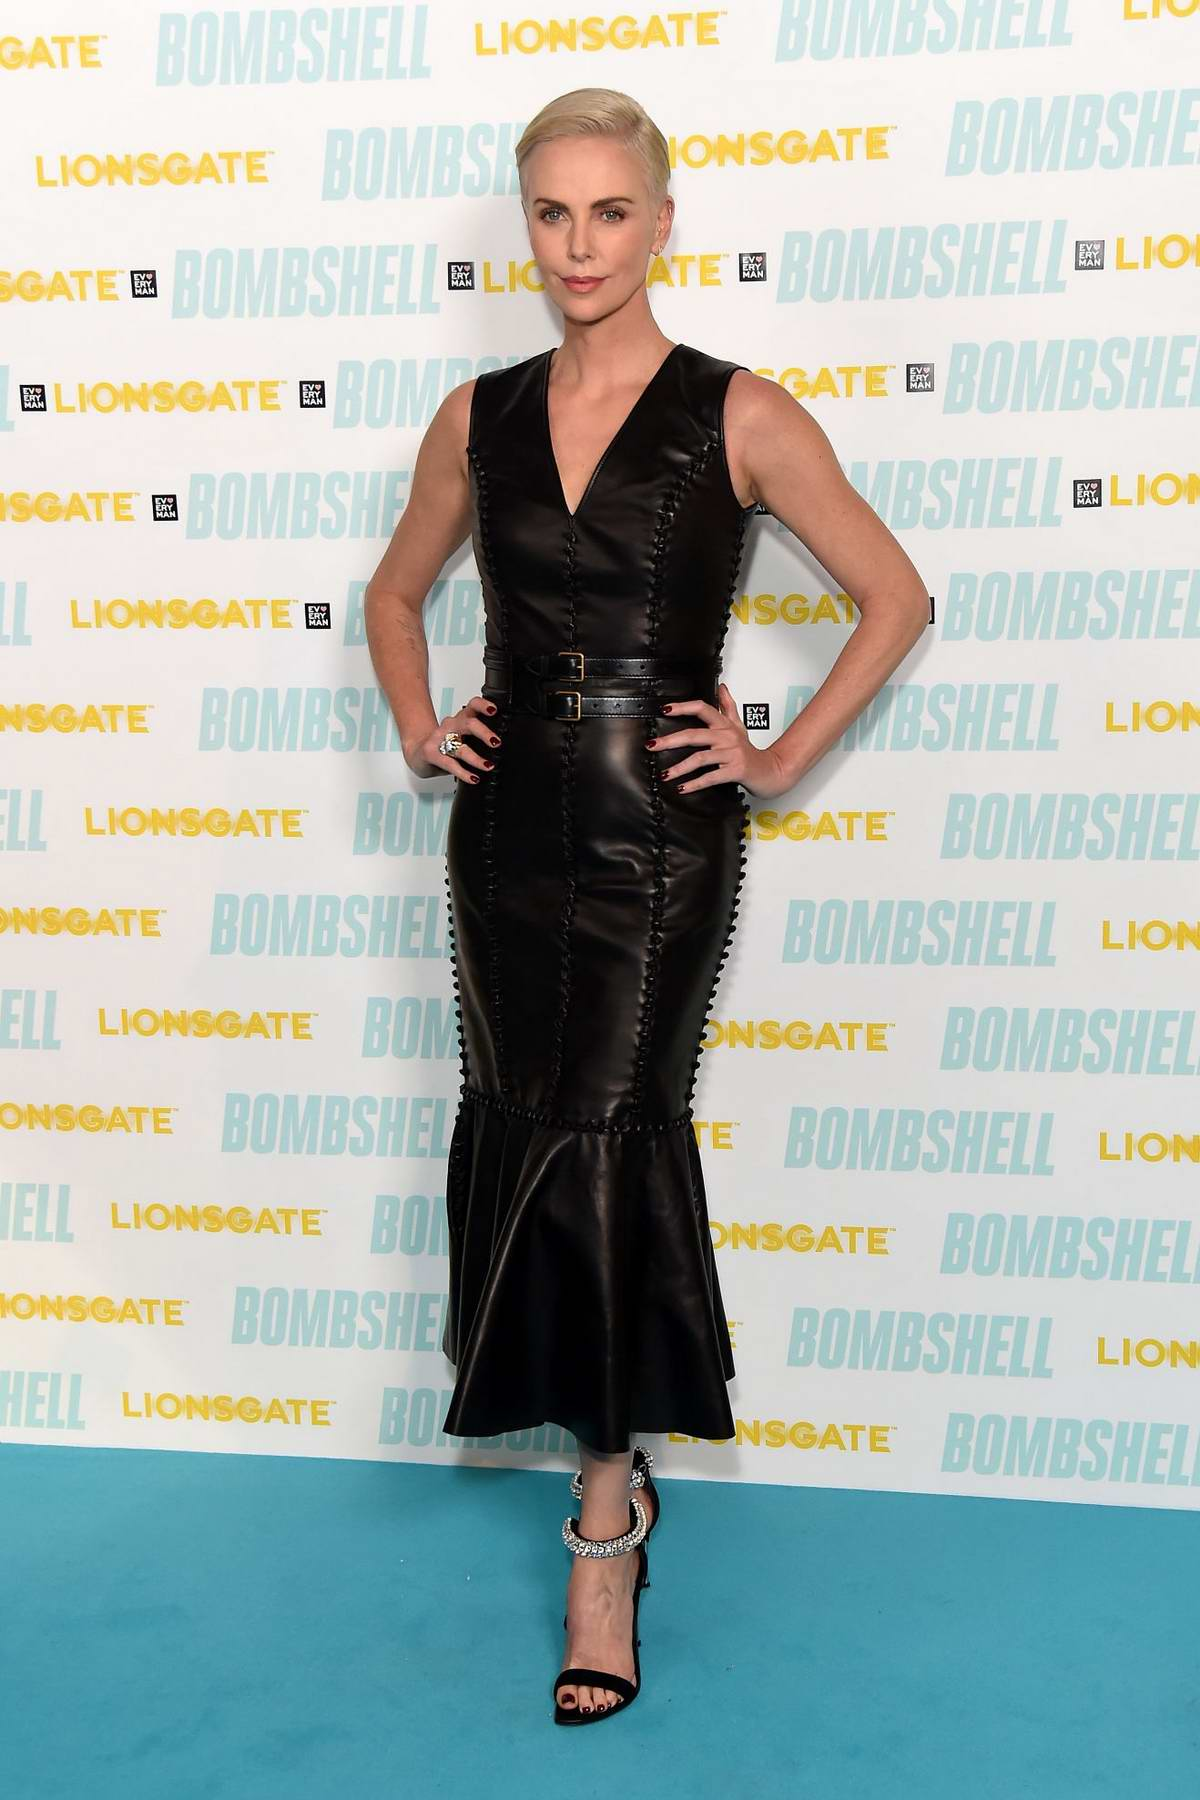 Charlize Theron attends a special BAFTA Q&A for 'Bombshell' at the Everyman Broadgate in London, UK